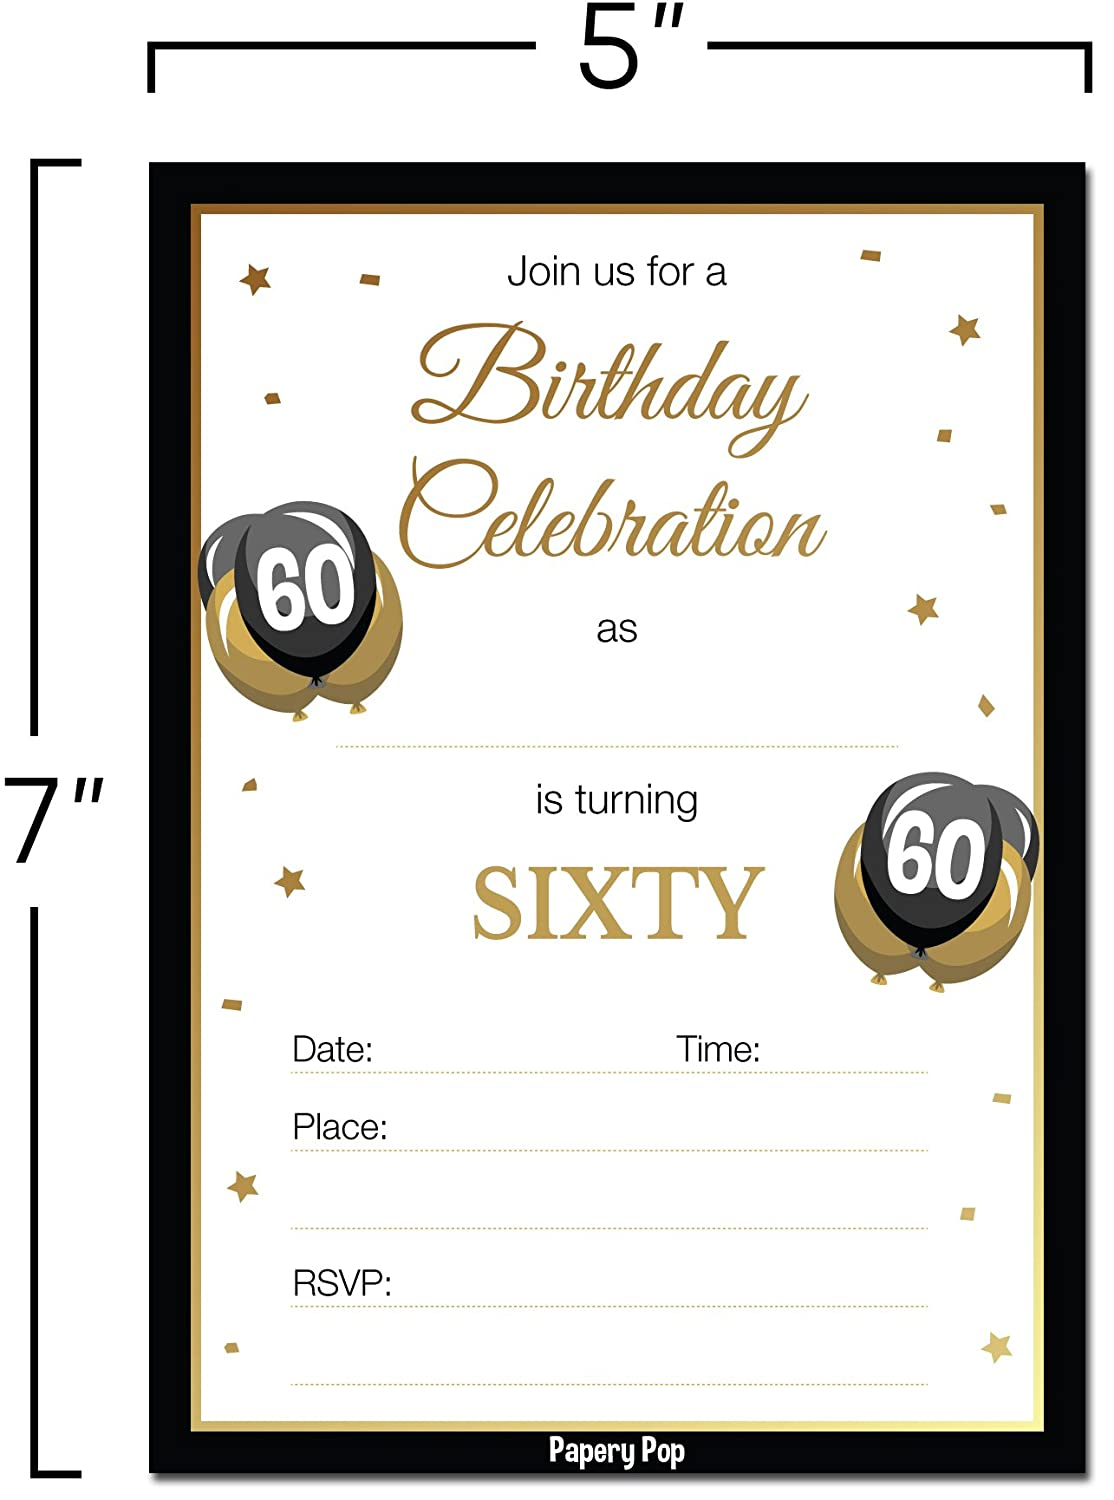 30 Count 60 Sixty Year Old Anniversary Party Celebration Invites Cards Papery Pop 60th Birthday Invitations with Envelopes